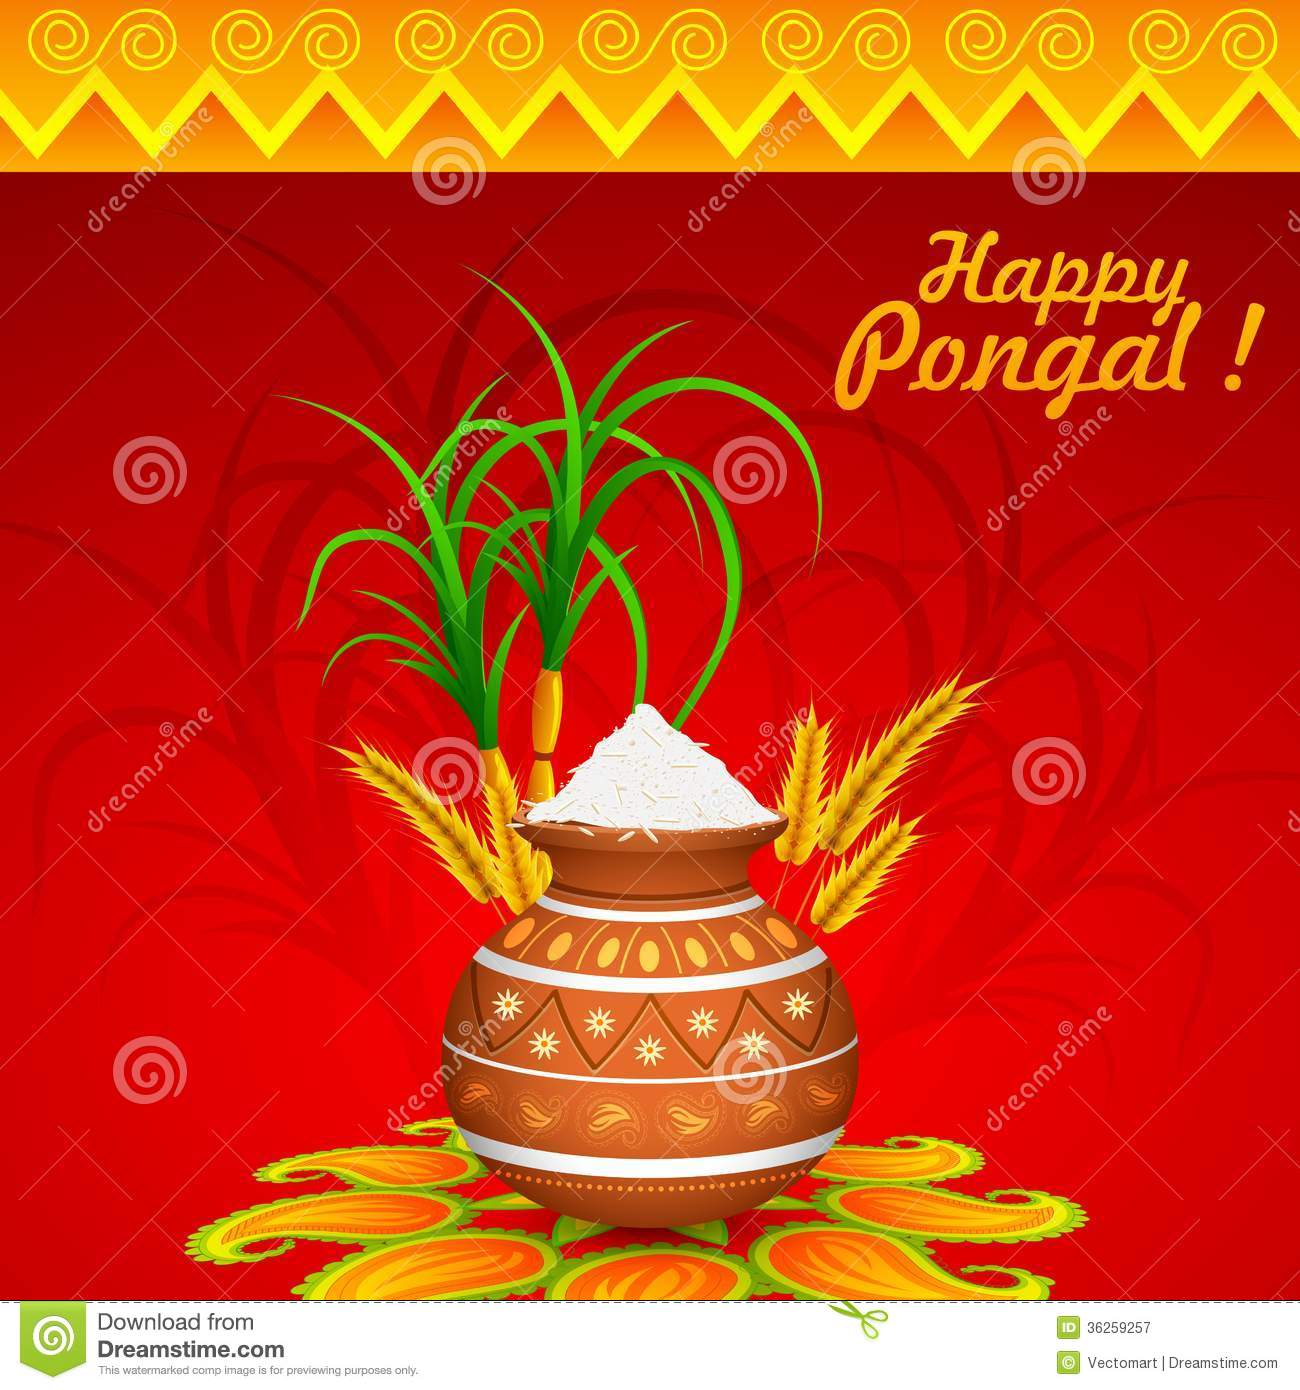 Happy Pongal Stock Vector Illustration Of Kalash Ethnic 36259257